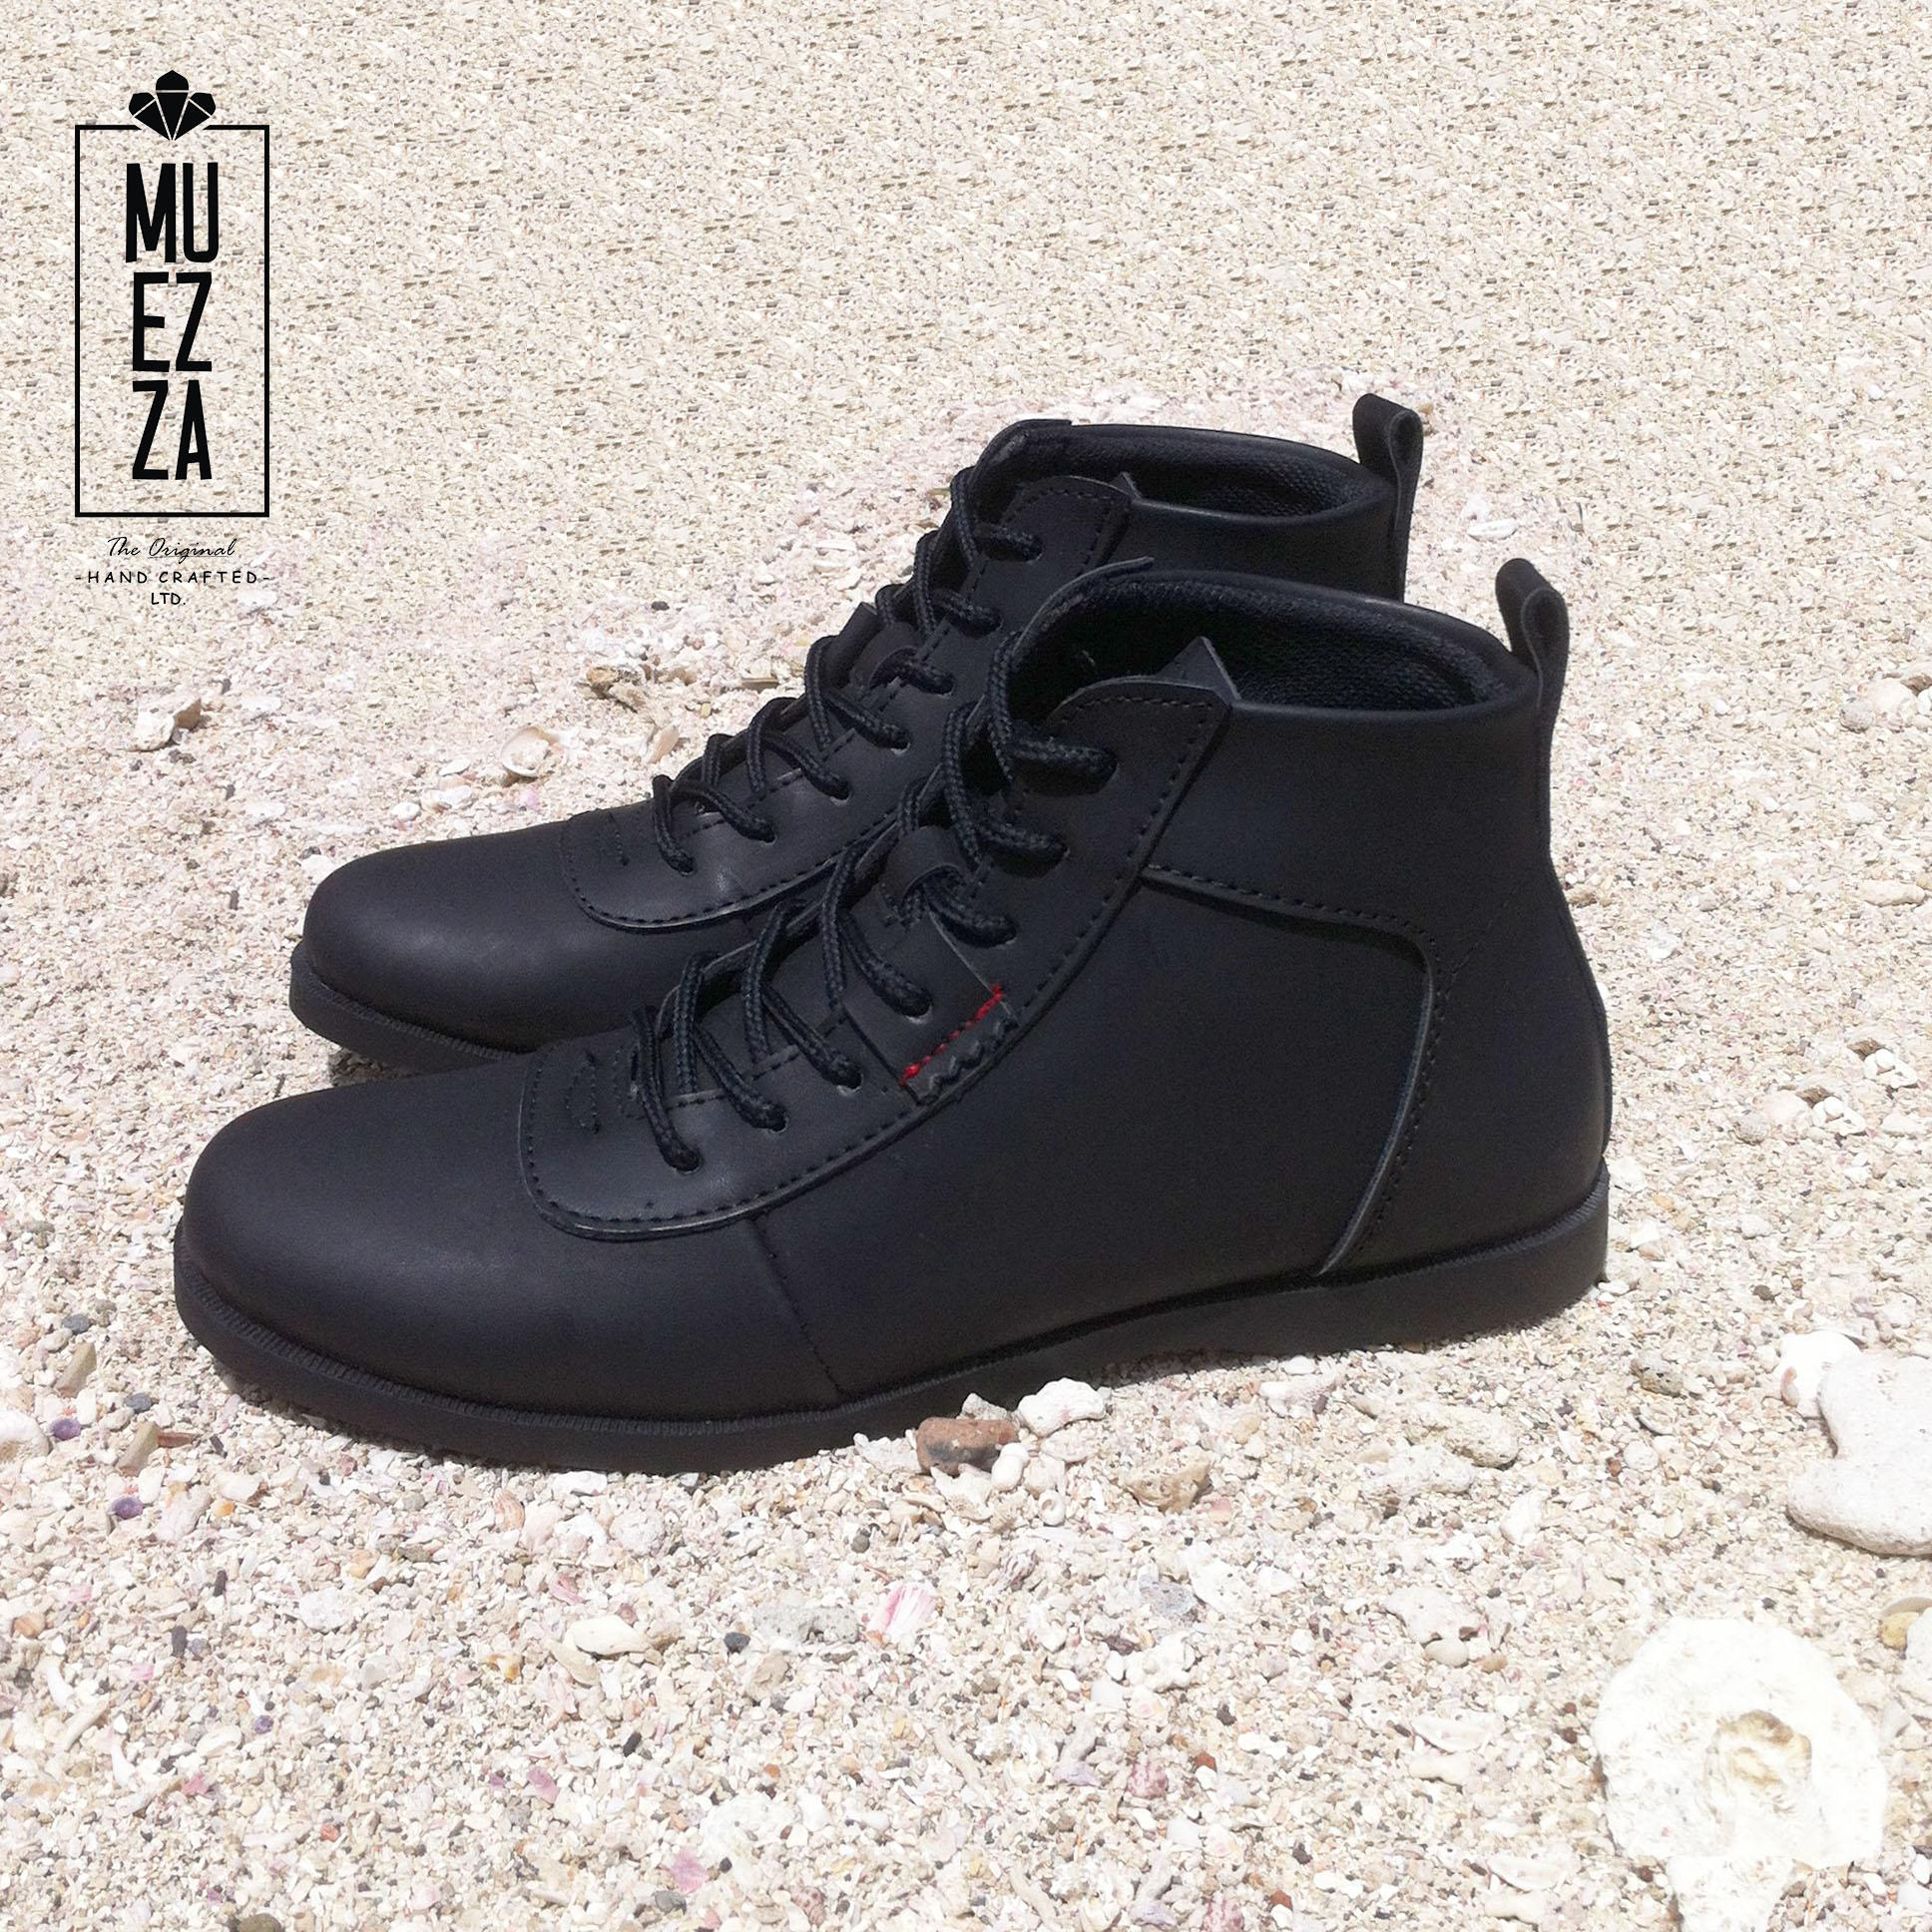 Sepatu Brodo / Sepatu Boot Bikers Muezza Lambador Touring Bandit Black Leather